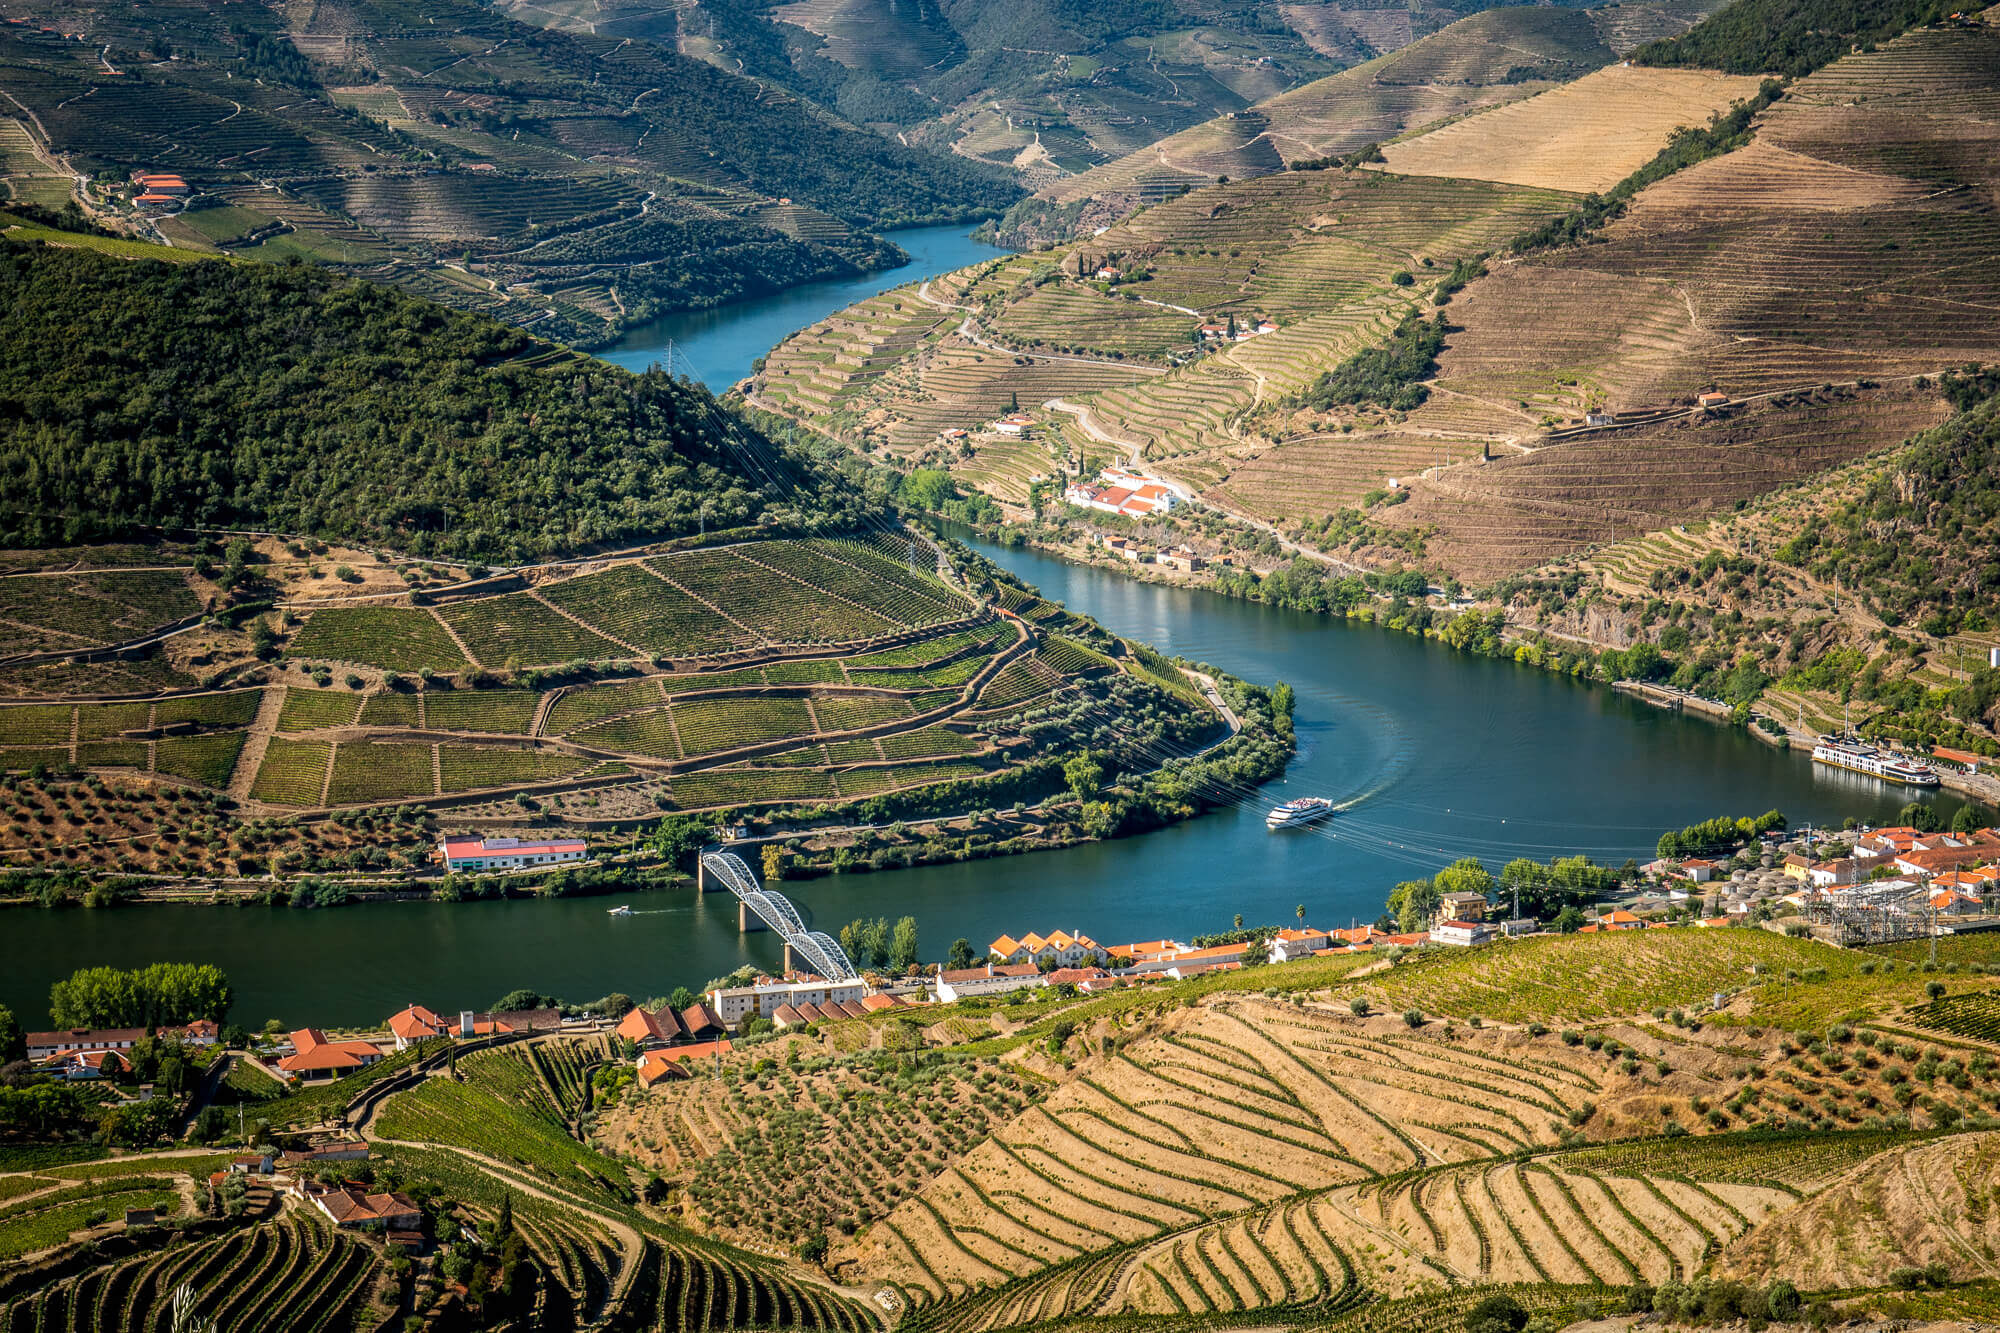 view of Douro River